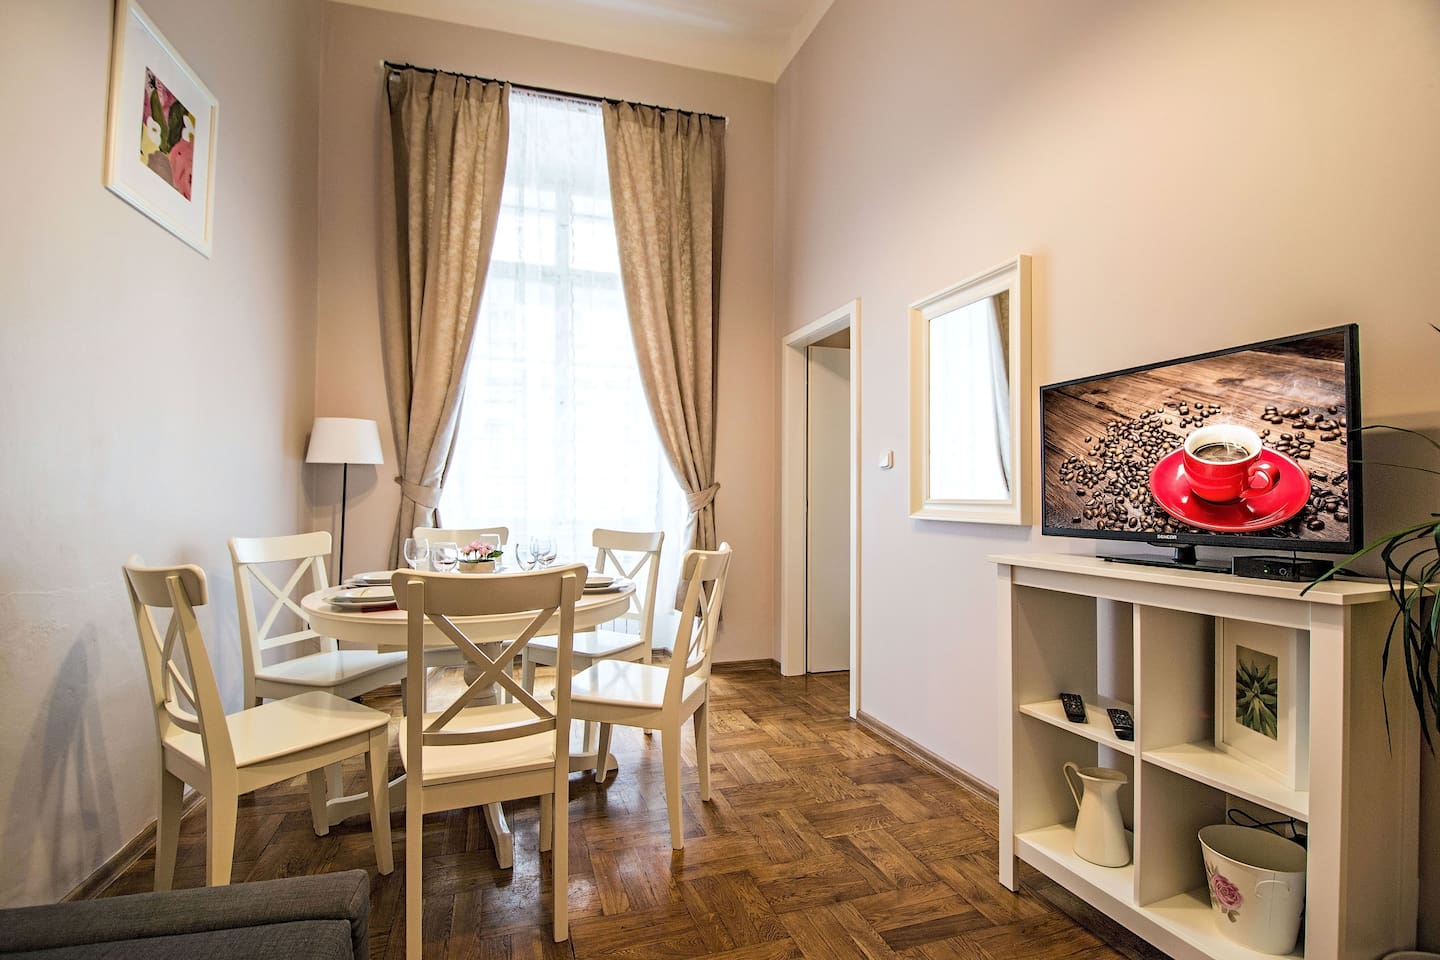 Spacious living room with dining table for 6 people